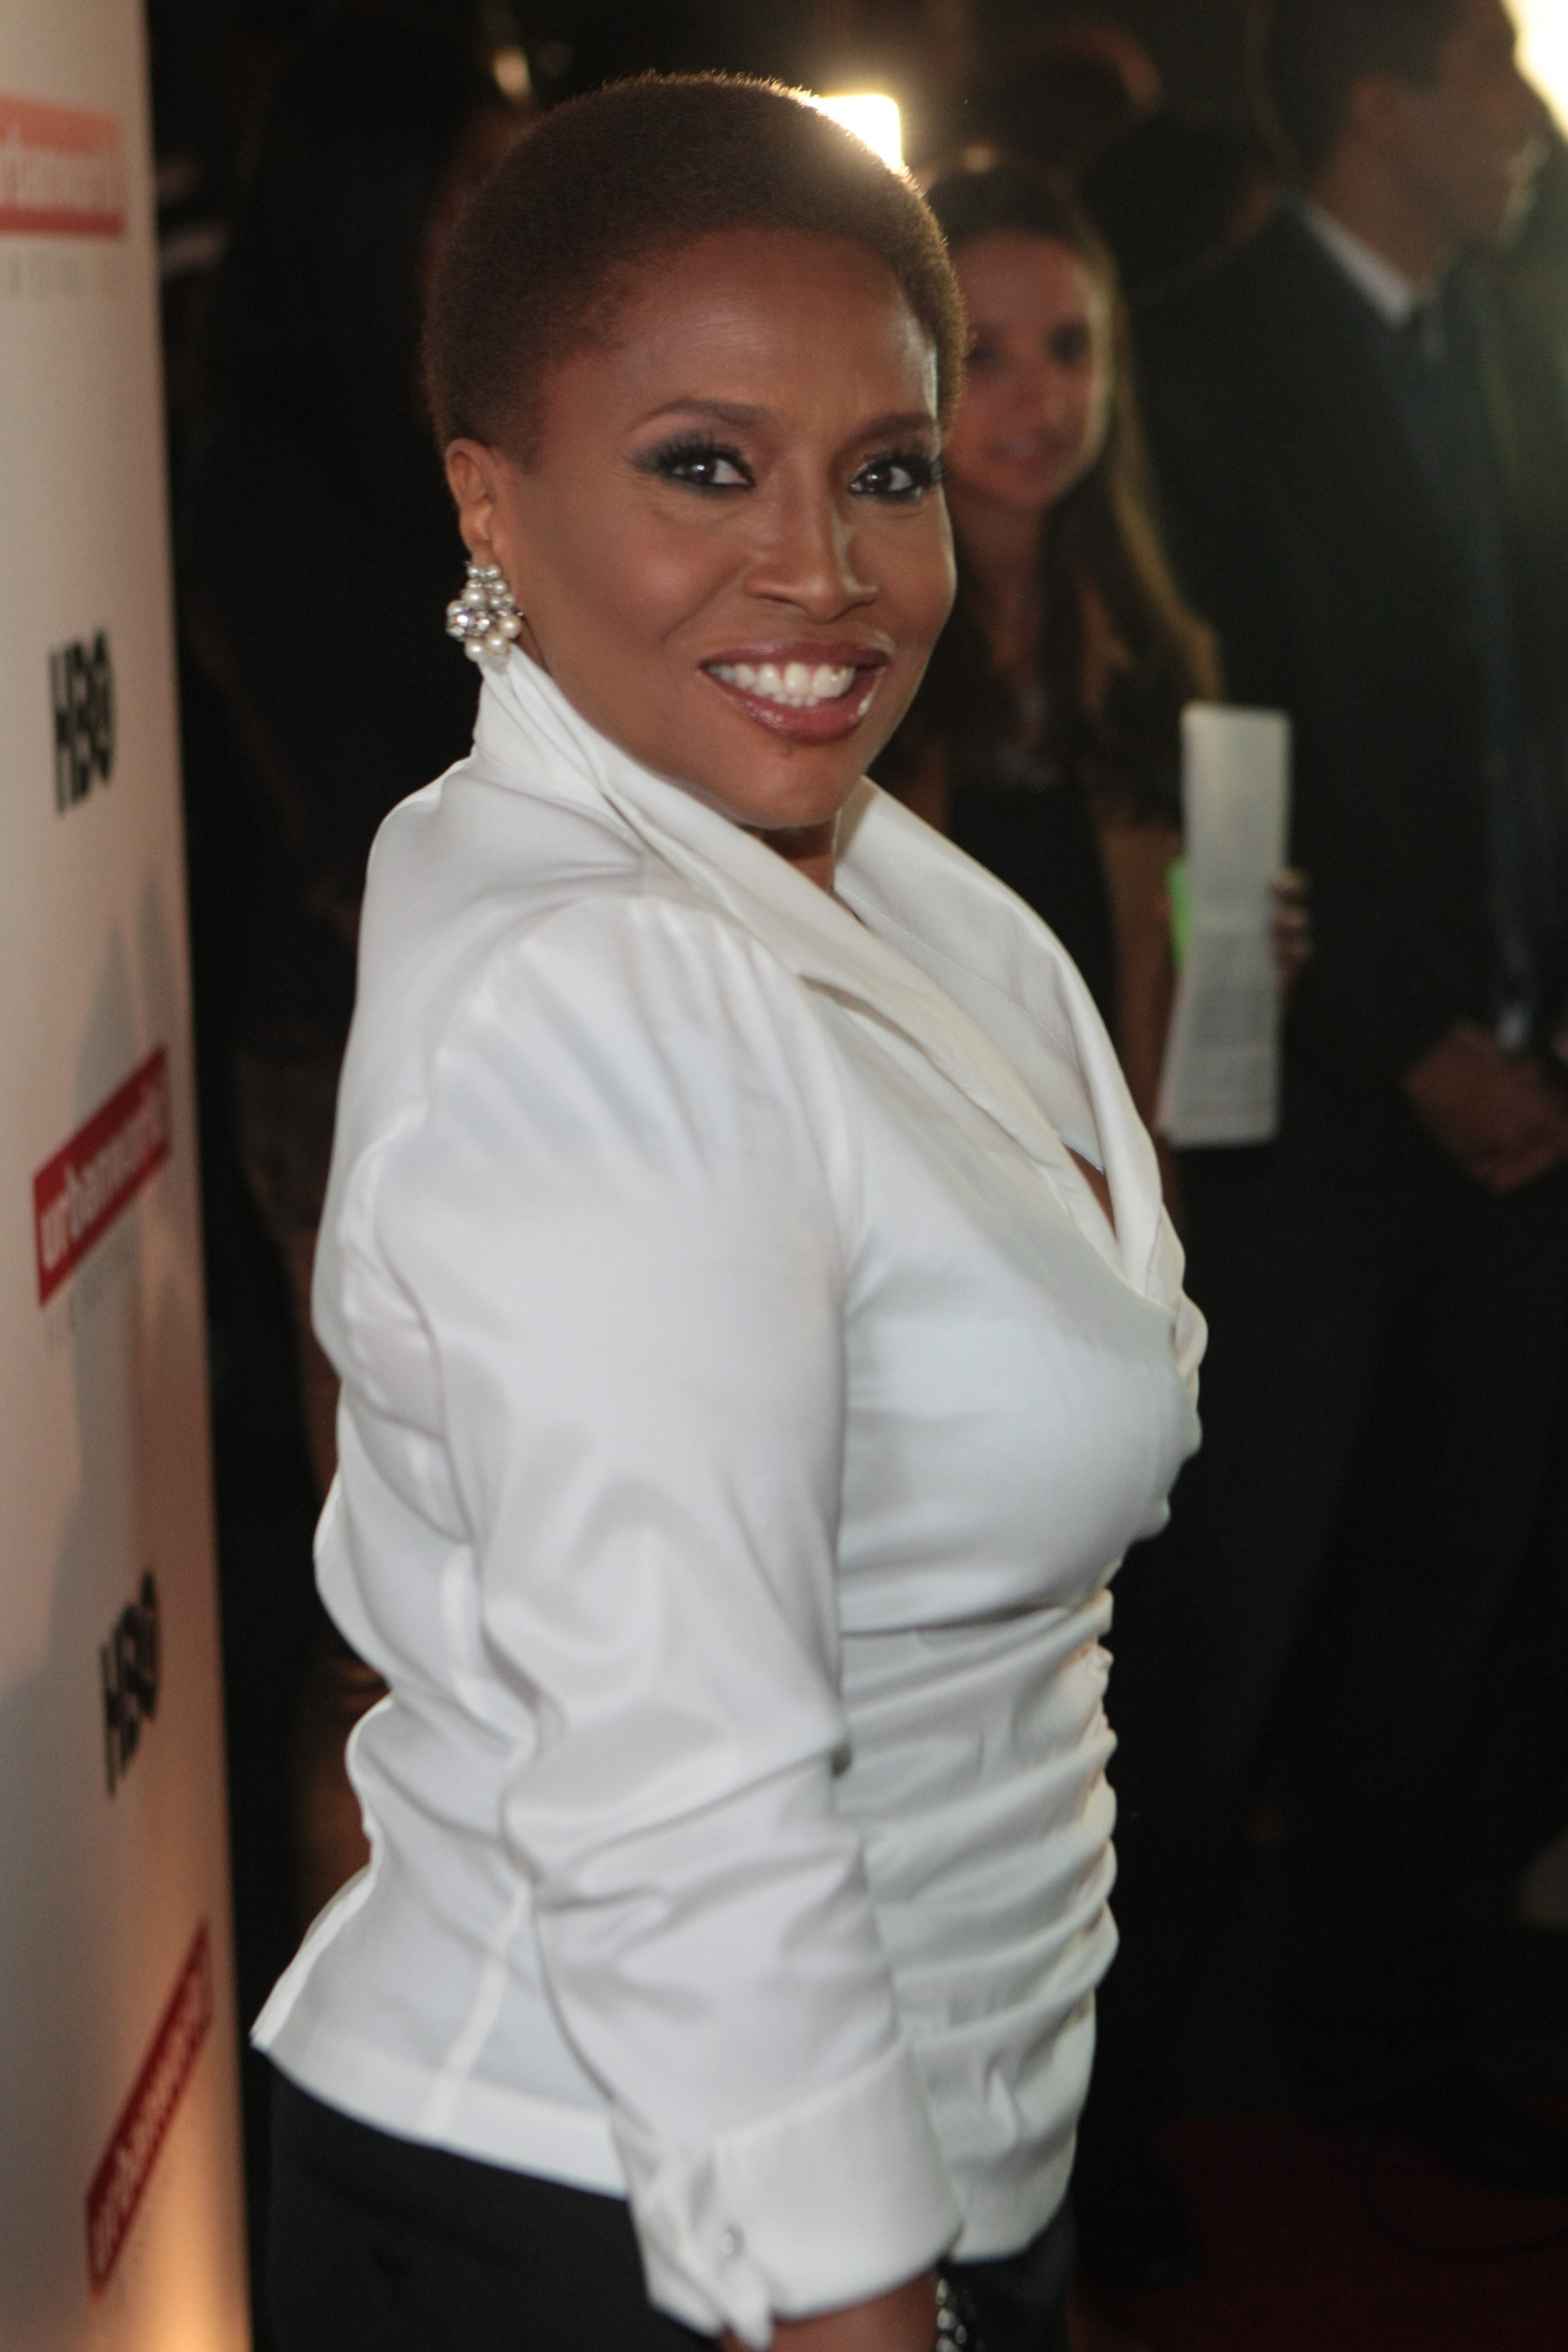 jenifer lewis moviesjenifer lewis nazarbayev university, jenifer lewis nu, jenifer lewis, jenifer lewis feet, jenifer lewis arnold byrd, jennifer lewis actress, jenifer lewis facebook, jenifer lewis dig a little deeper, jennifer a.lewis wikipedia, jenifer lewis net worth, jenifer lewis movies, jenifer lewis daughter, jenifer lewis bipolar, jenifer lewis fresh prince, jennifer lewis imdb, jenifer lewis blackish, jenifer lewis husband, jenifer lewis instagram, jenifer lewis daughter charmaine, jenifer lewis and josh gad